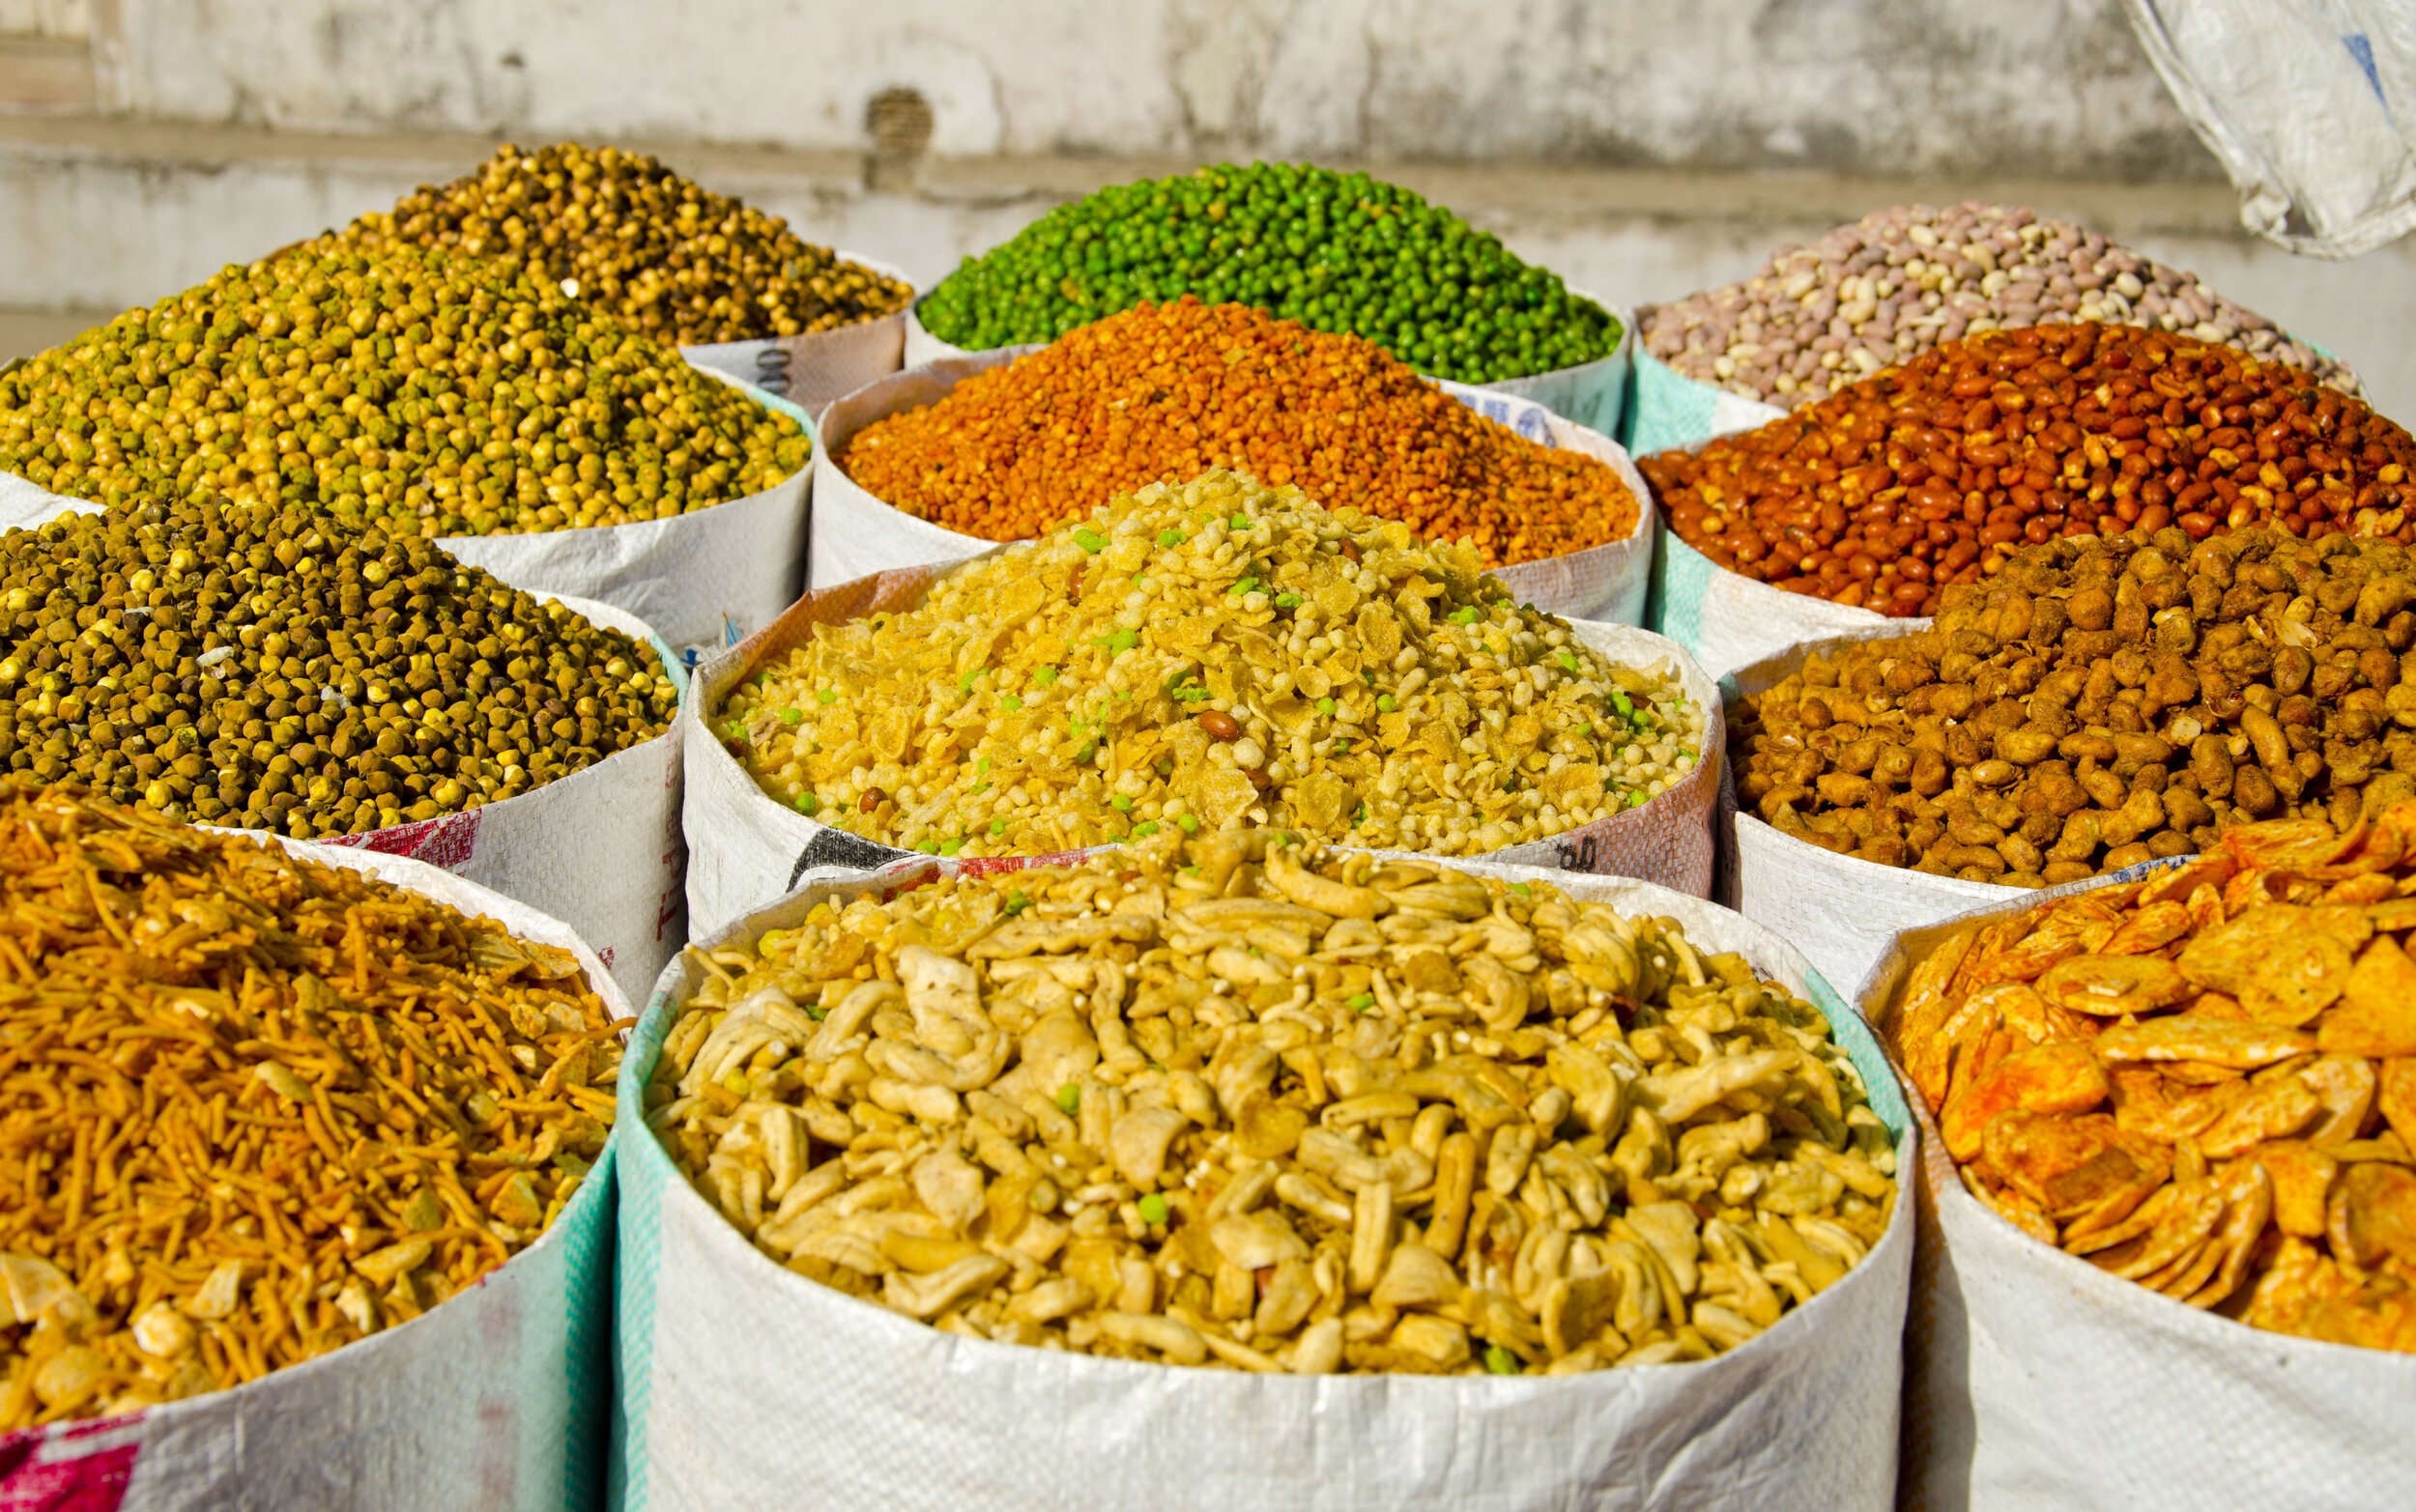 Indian spices sold at New Delhi street food market.